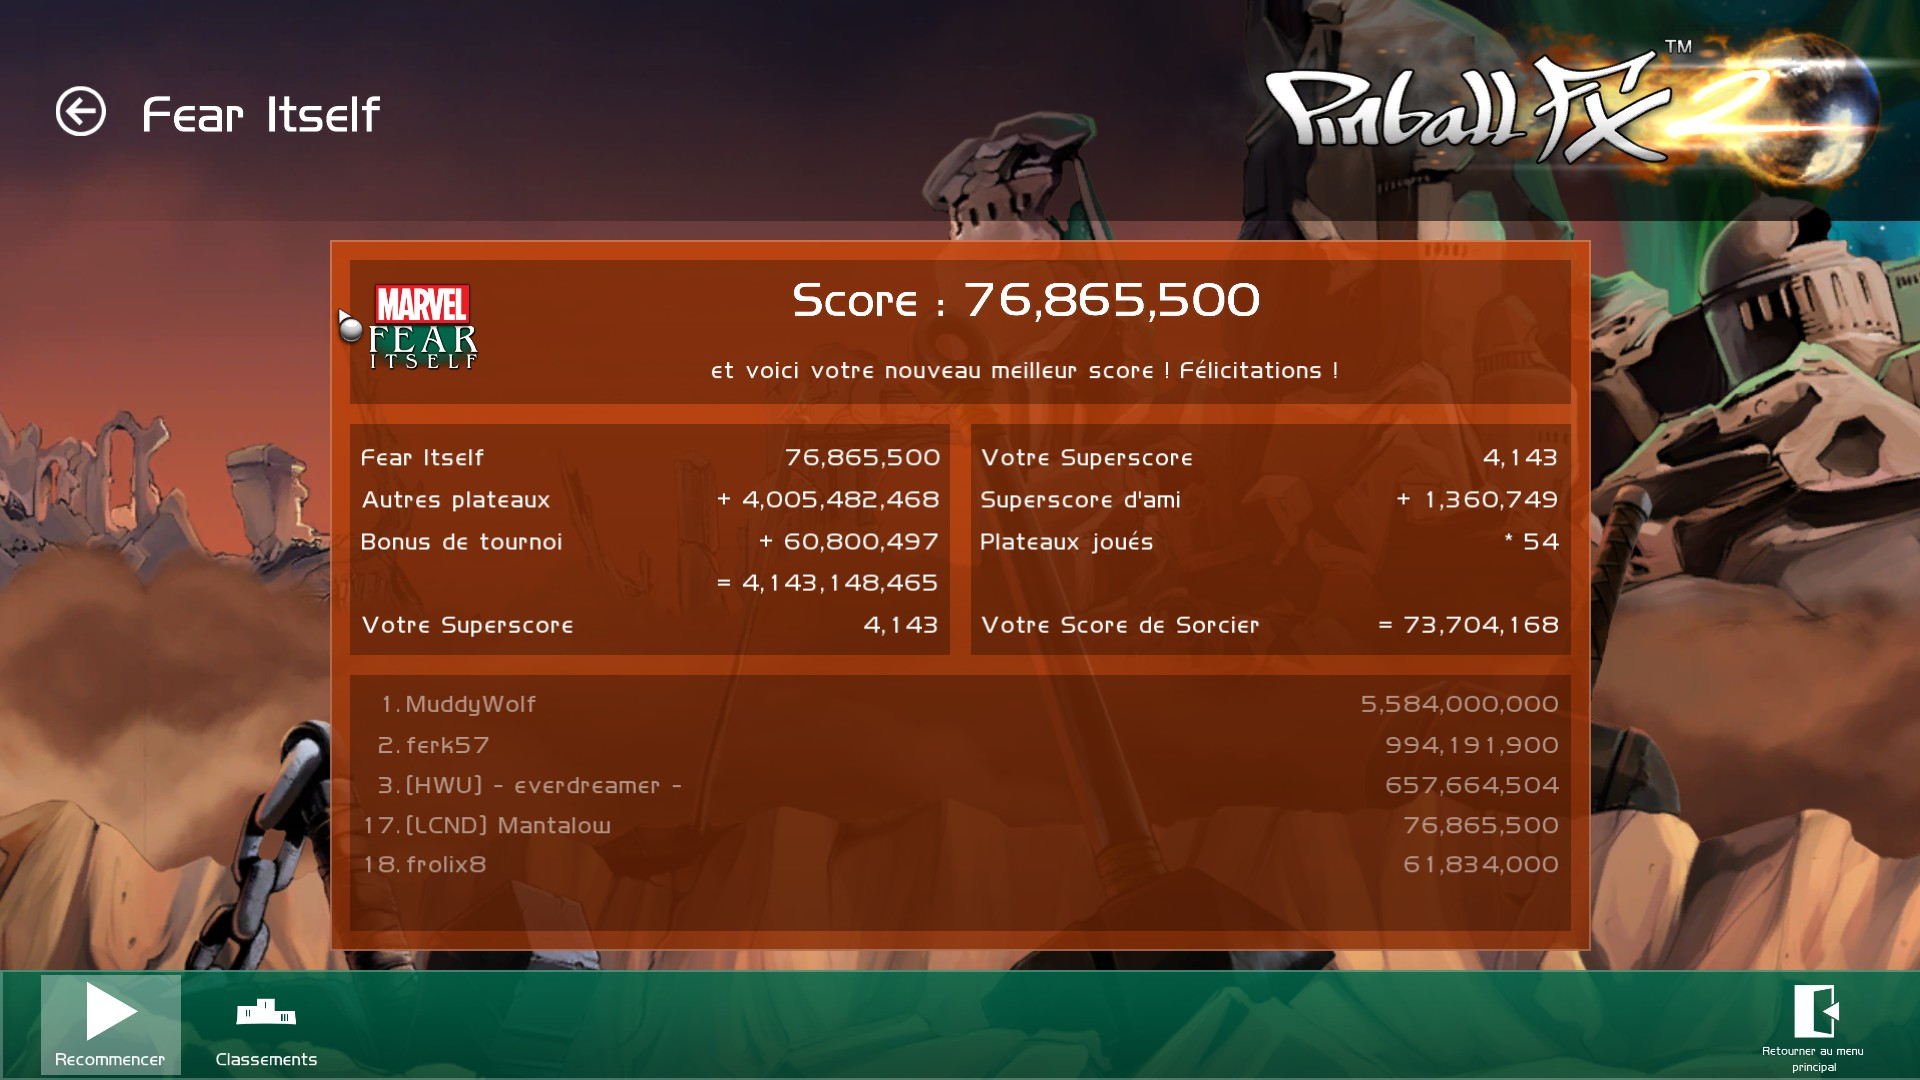 Mantalow: Pinball FX 2: Fear Itself (PC) 76,865,500 points on 2015-07-22 04:42:13